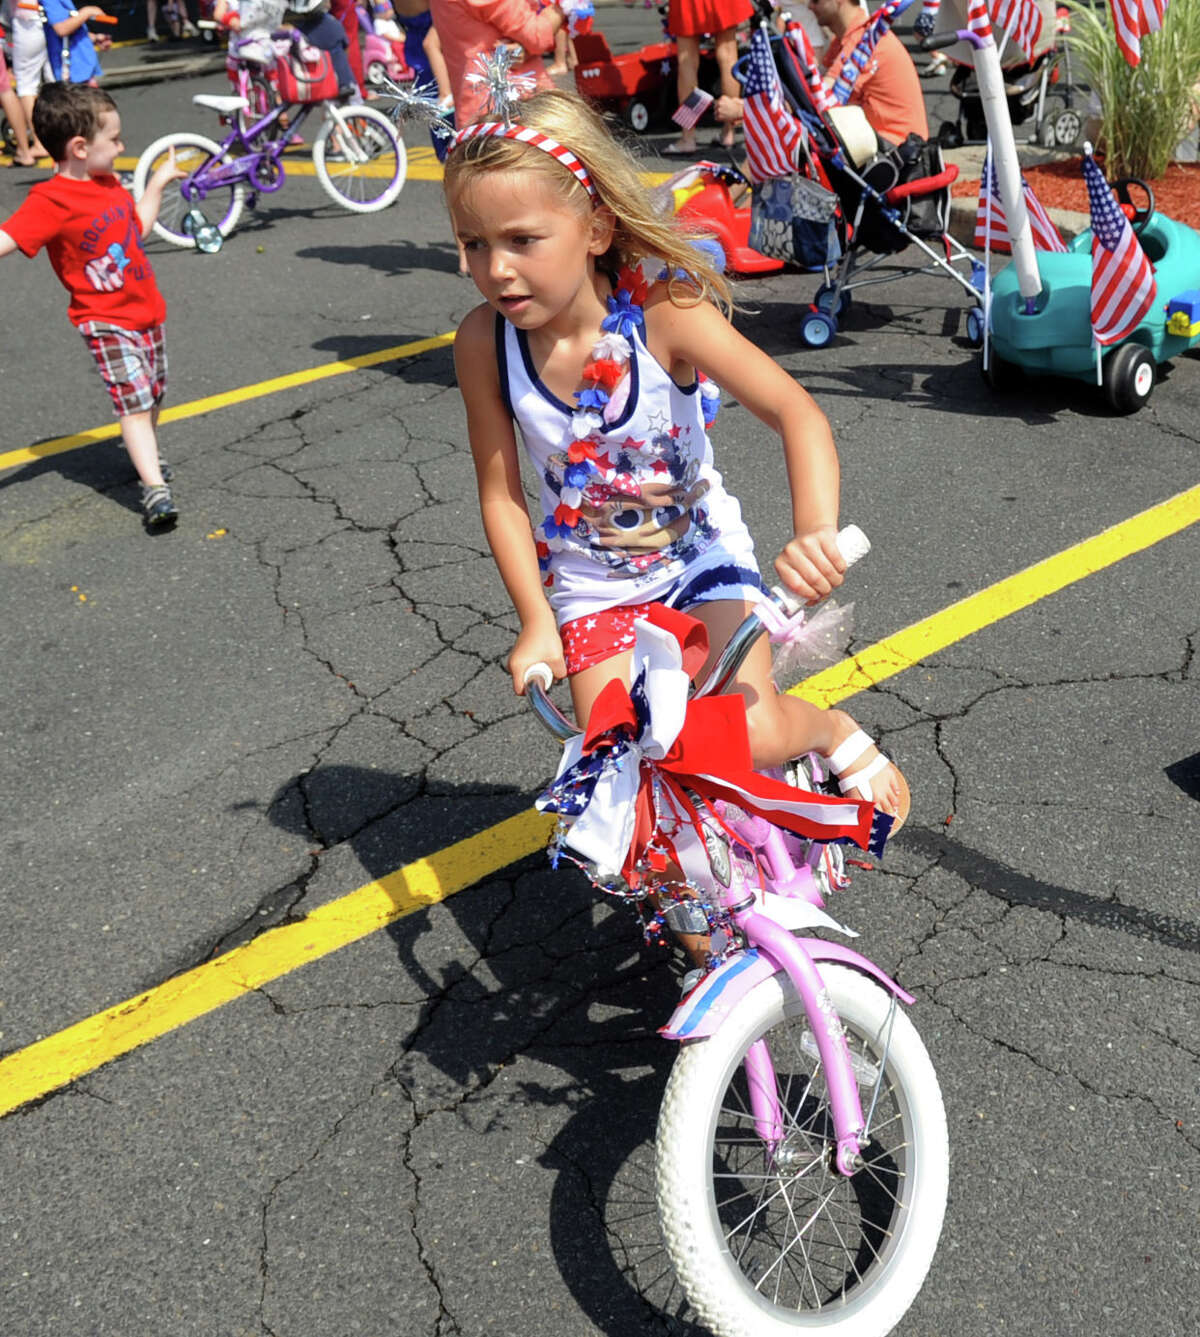 Caitlyn Lodge, 6, rides her bike during Wednesday's YWCA Push-n-Pull Parade in Darien on July 4, 2012.